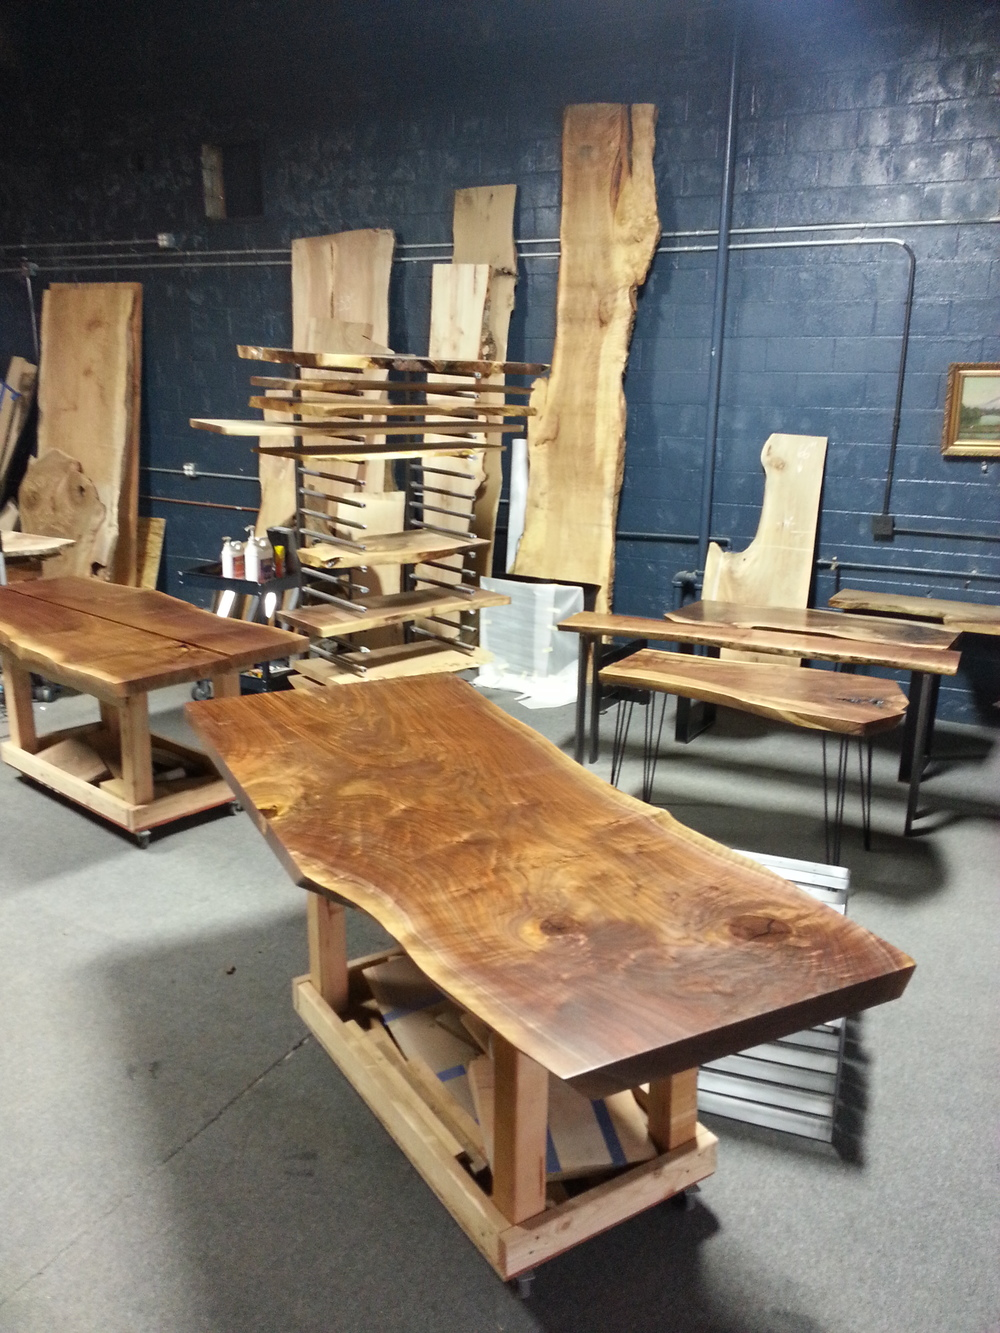 LIVE EDGE DINING TABLE IN PROCESS